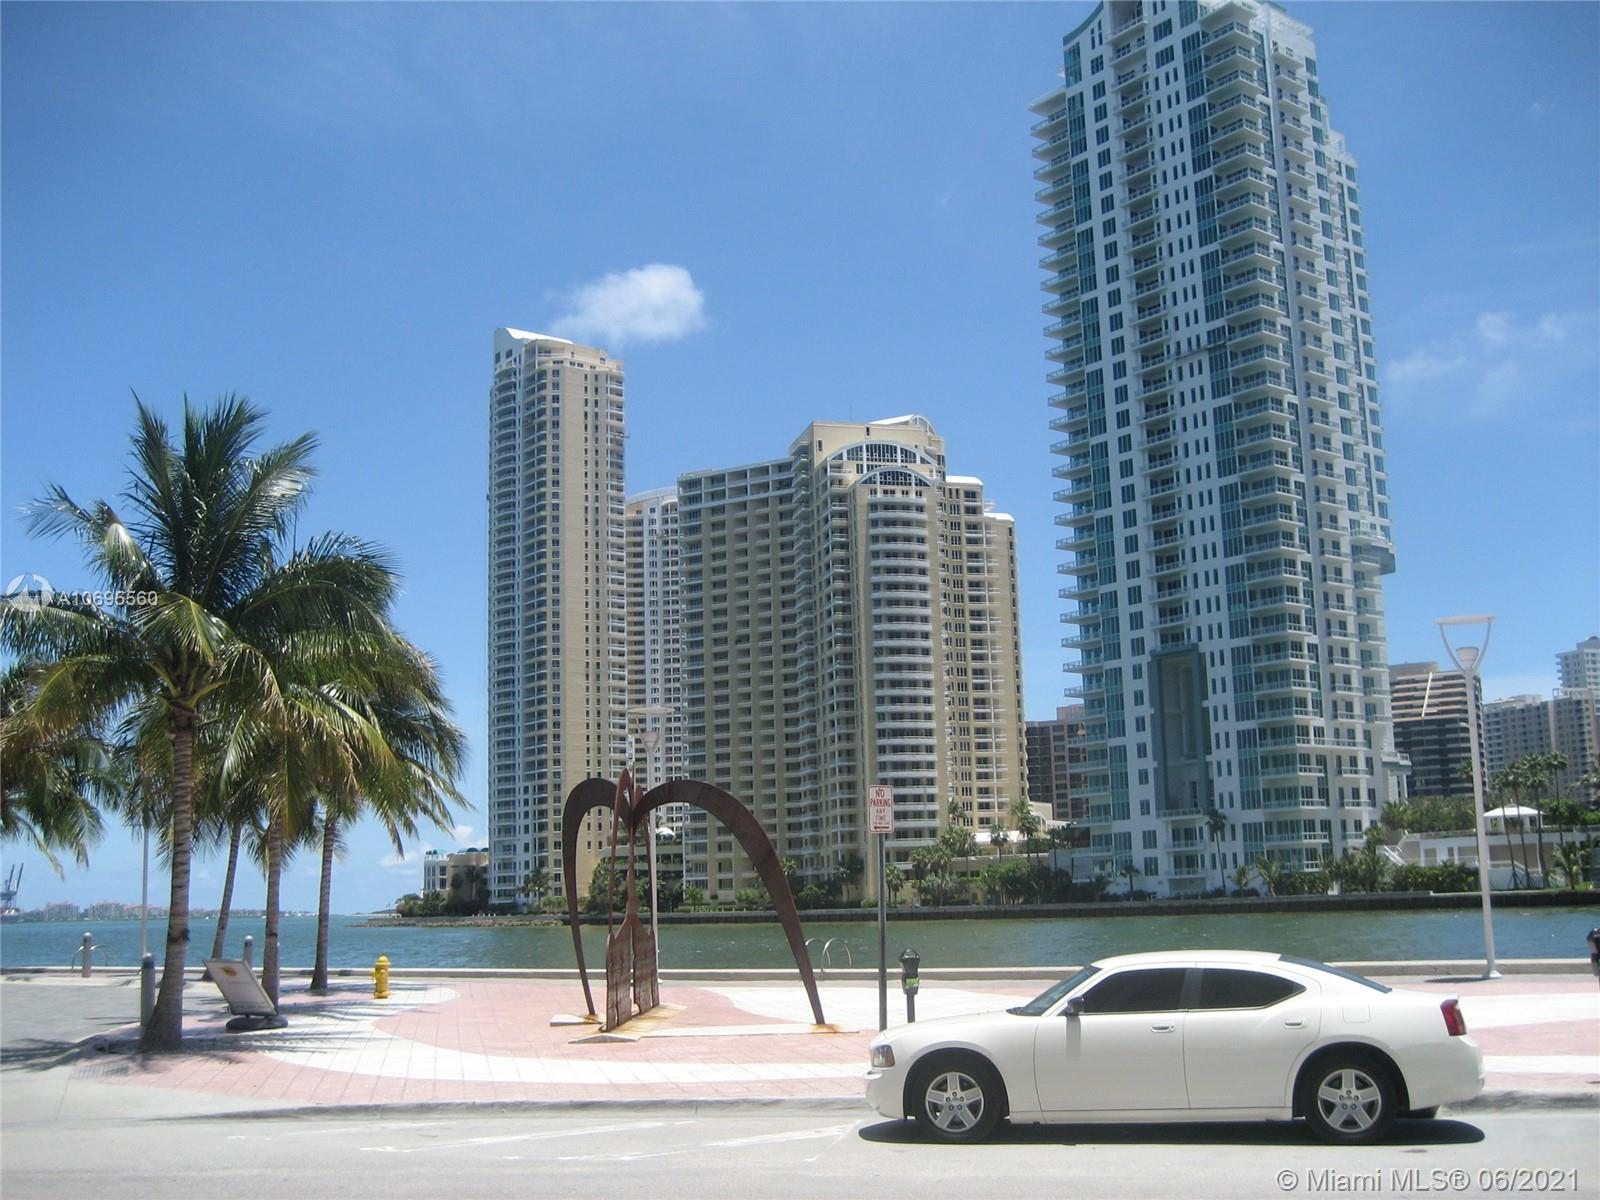 Met 1 is a Beautiful downtown Condo on the River with great amenities Gym Sauna Yoga Valet room Heat